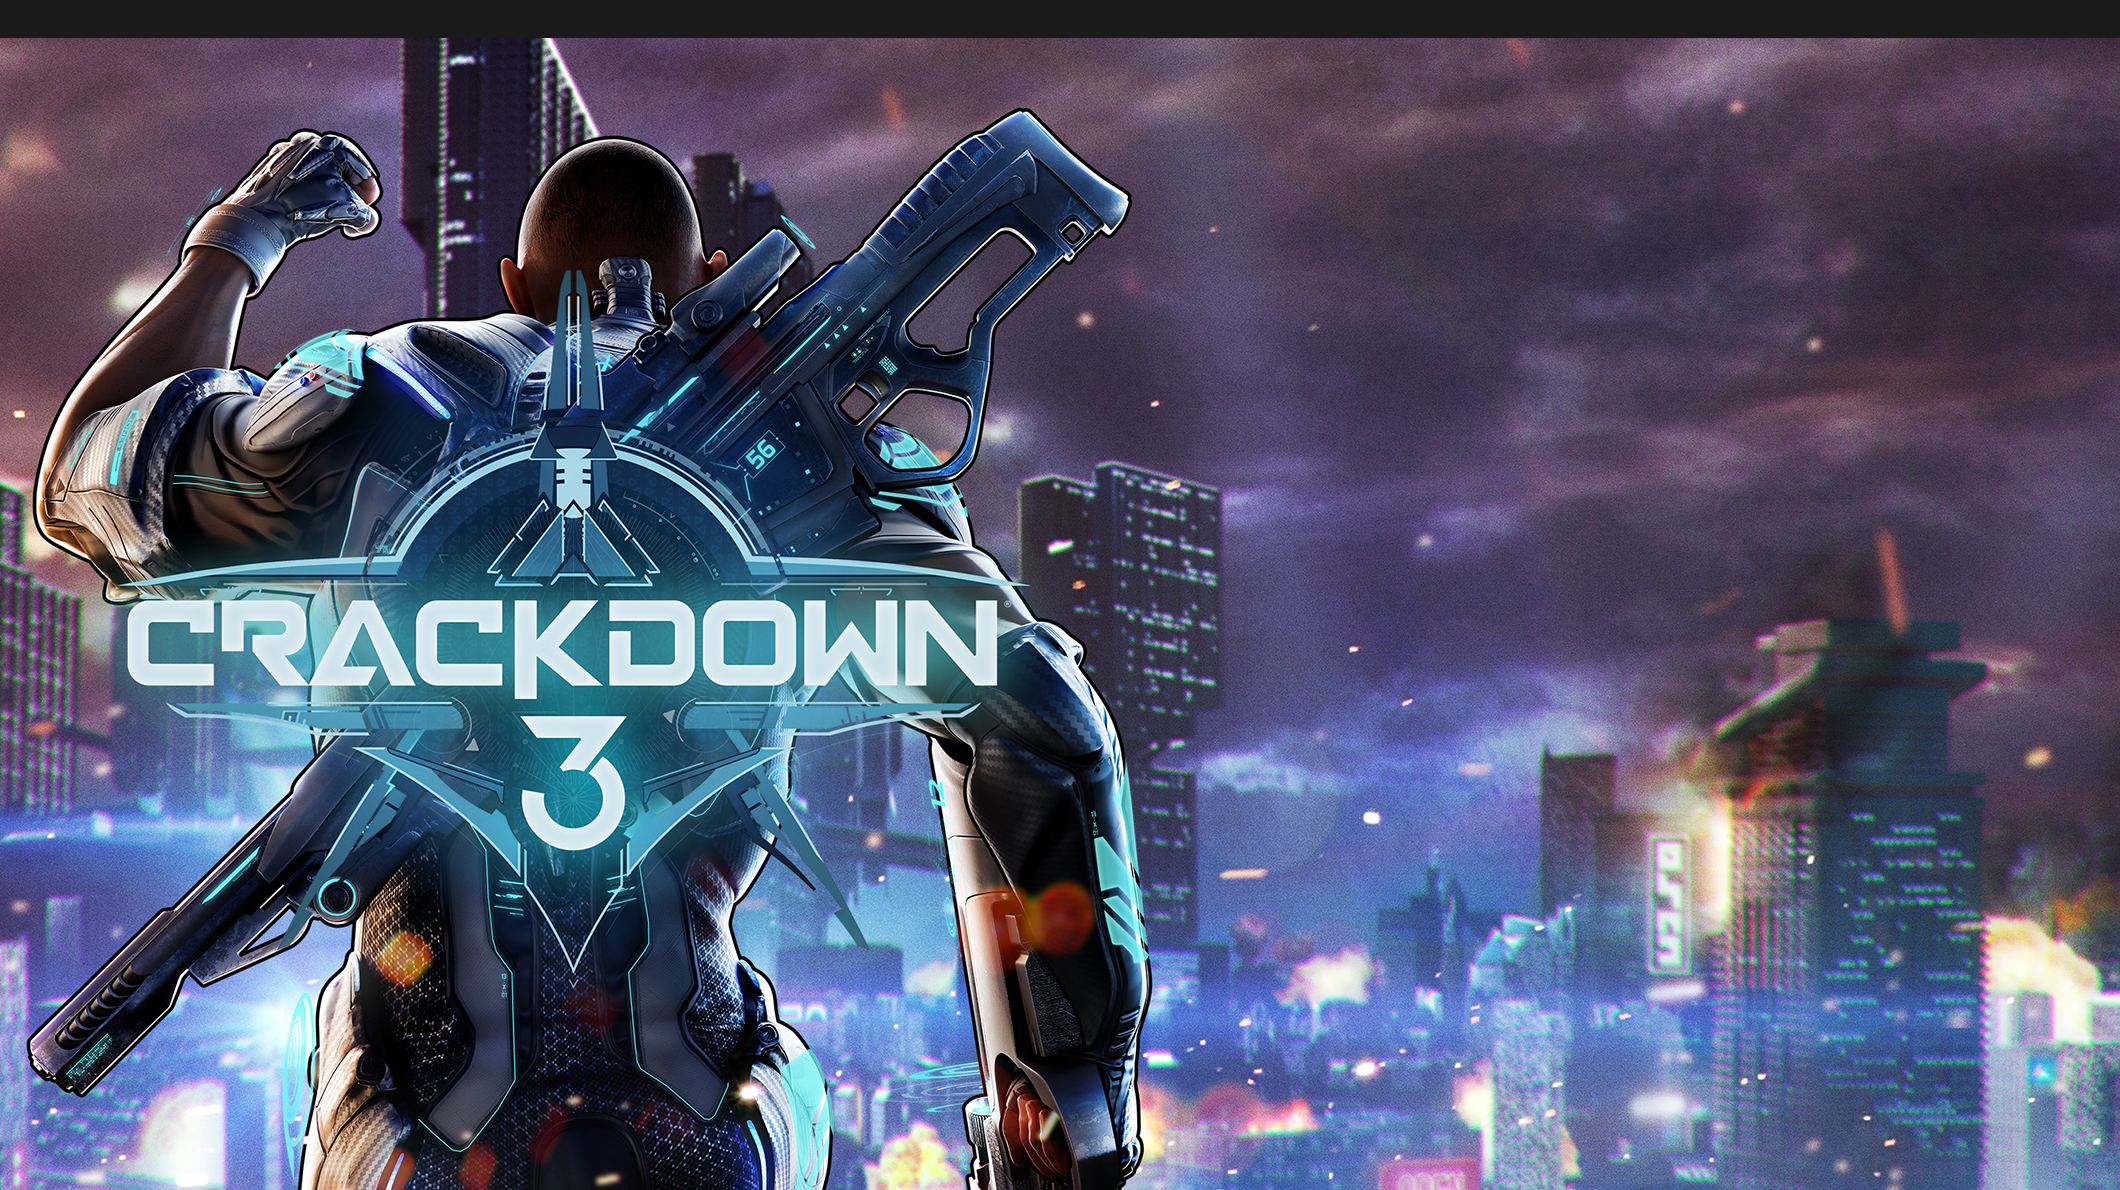 Crackdown 3 for Xbox One.